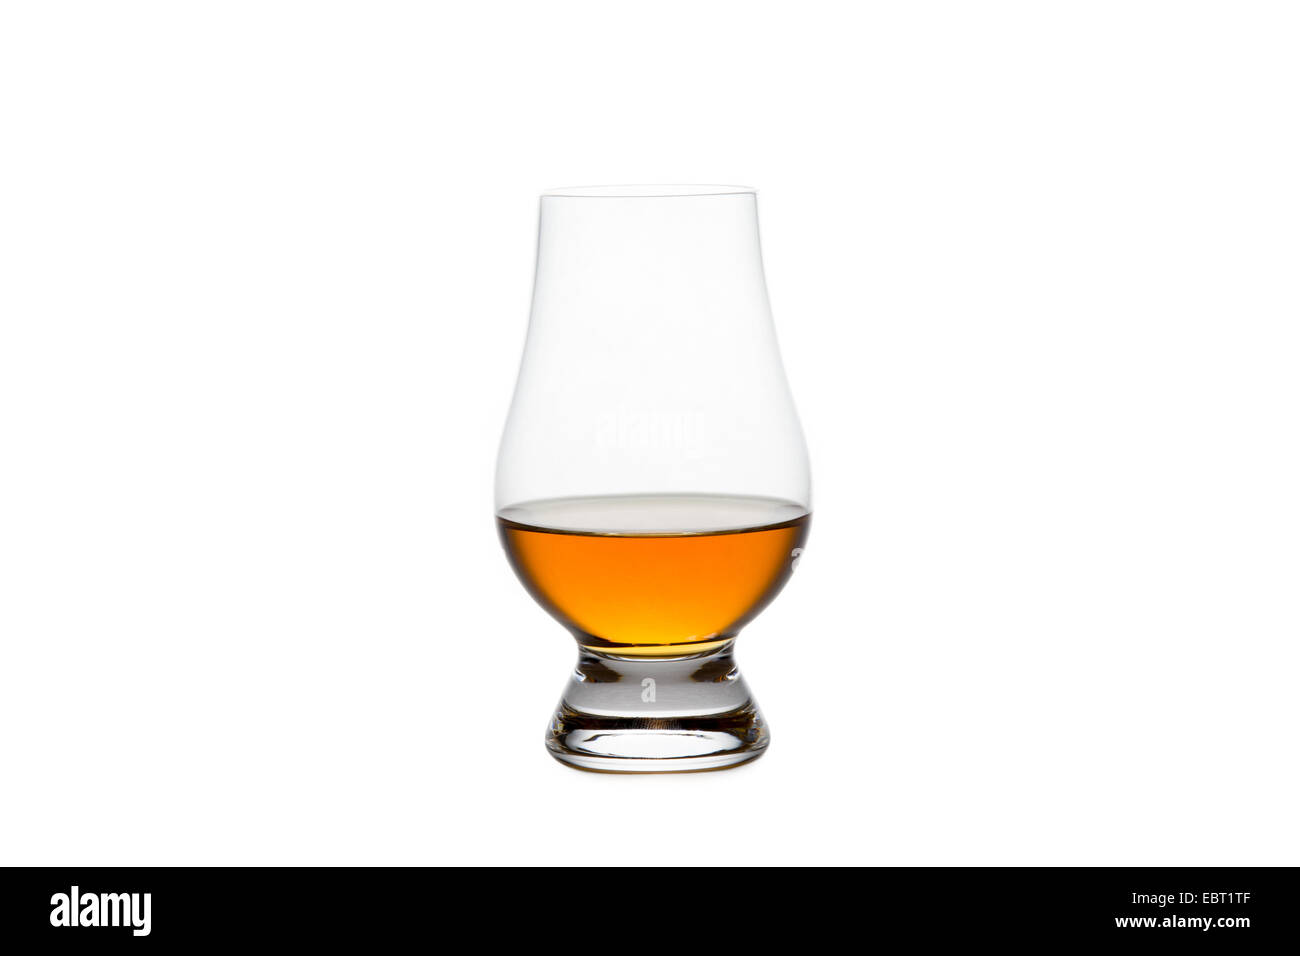 Crystal glass containing whiskey, bourbon, or other amber liquor.  Isolated on white. - Stock Image